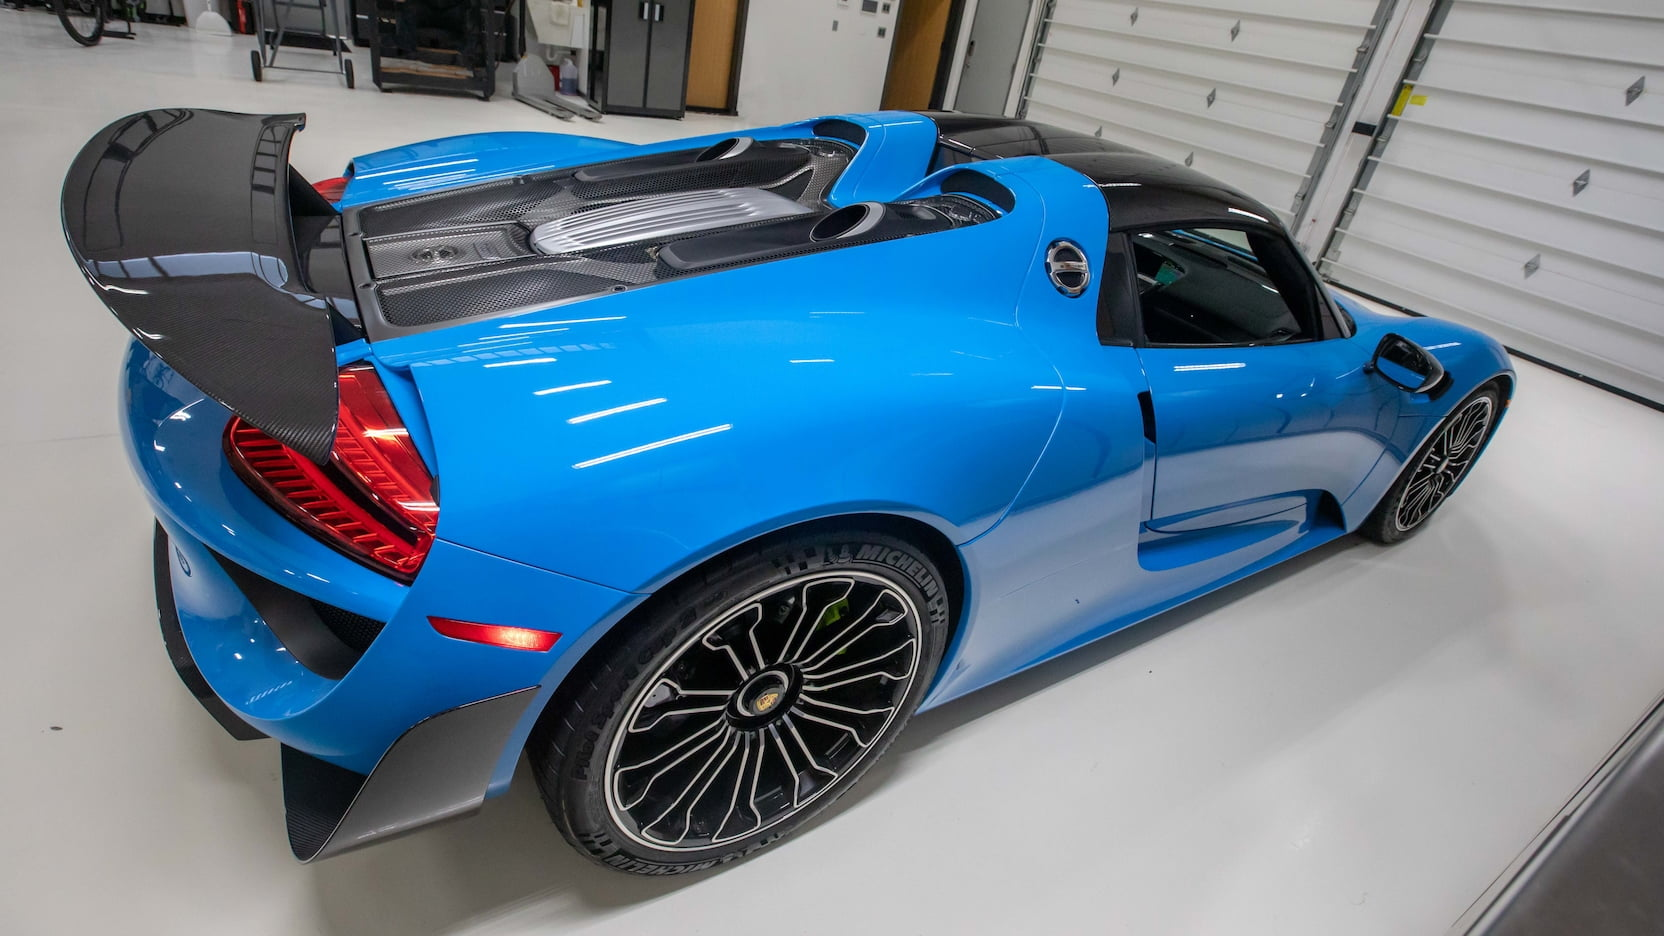 Porsche-918-Spyder-Riviera-Blue-auction-8